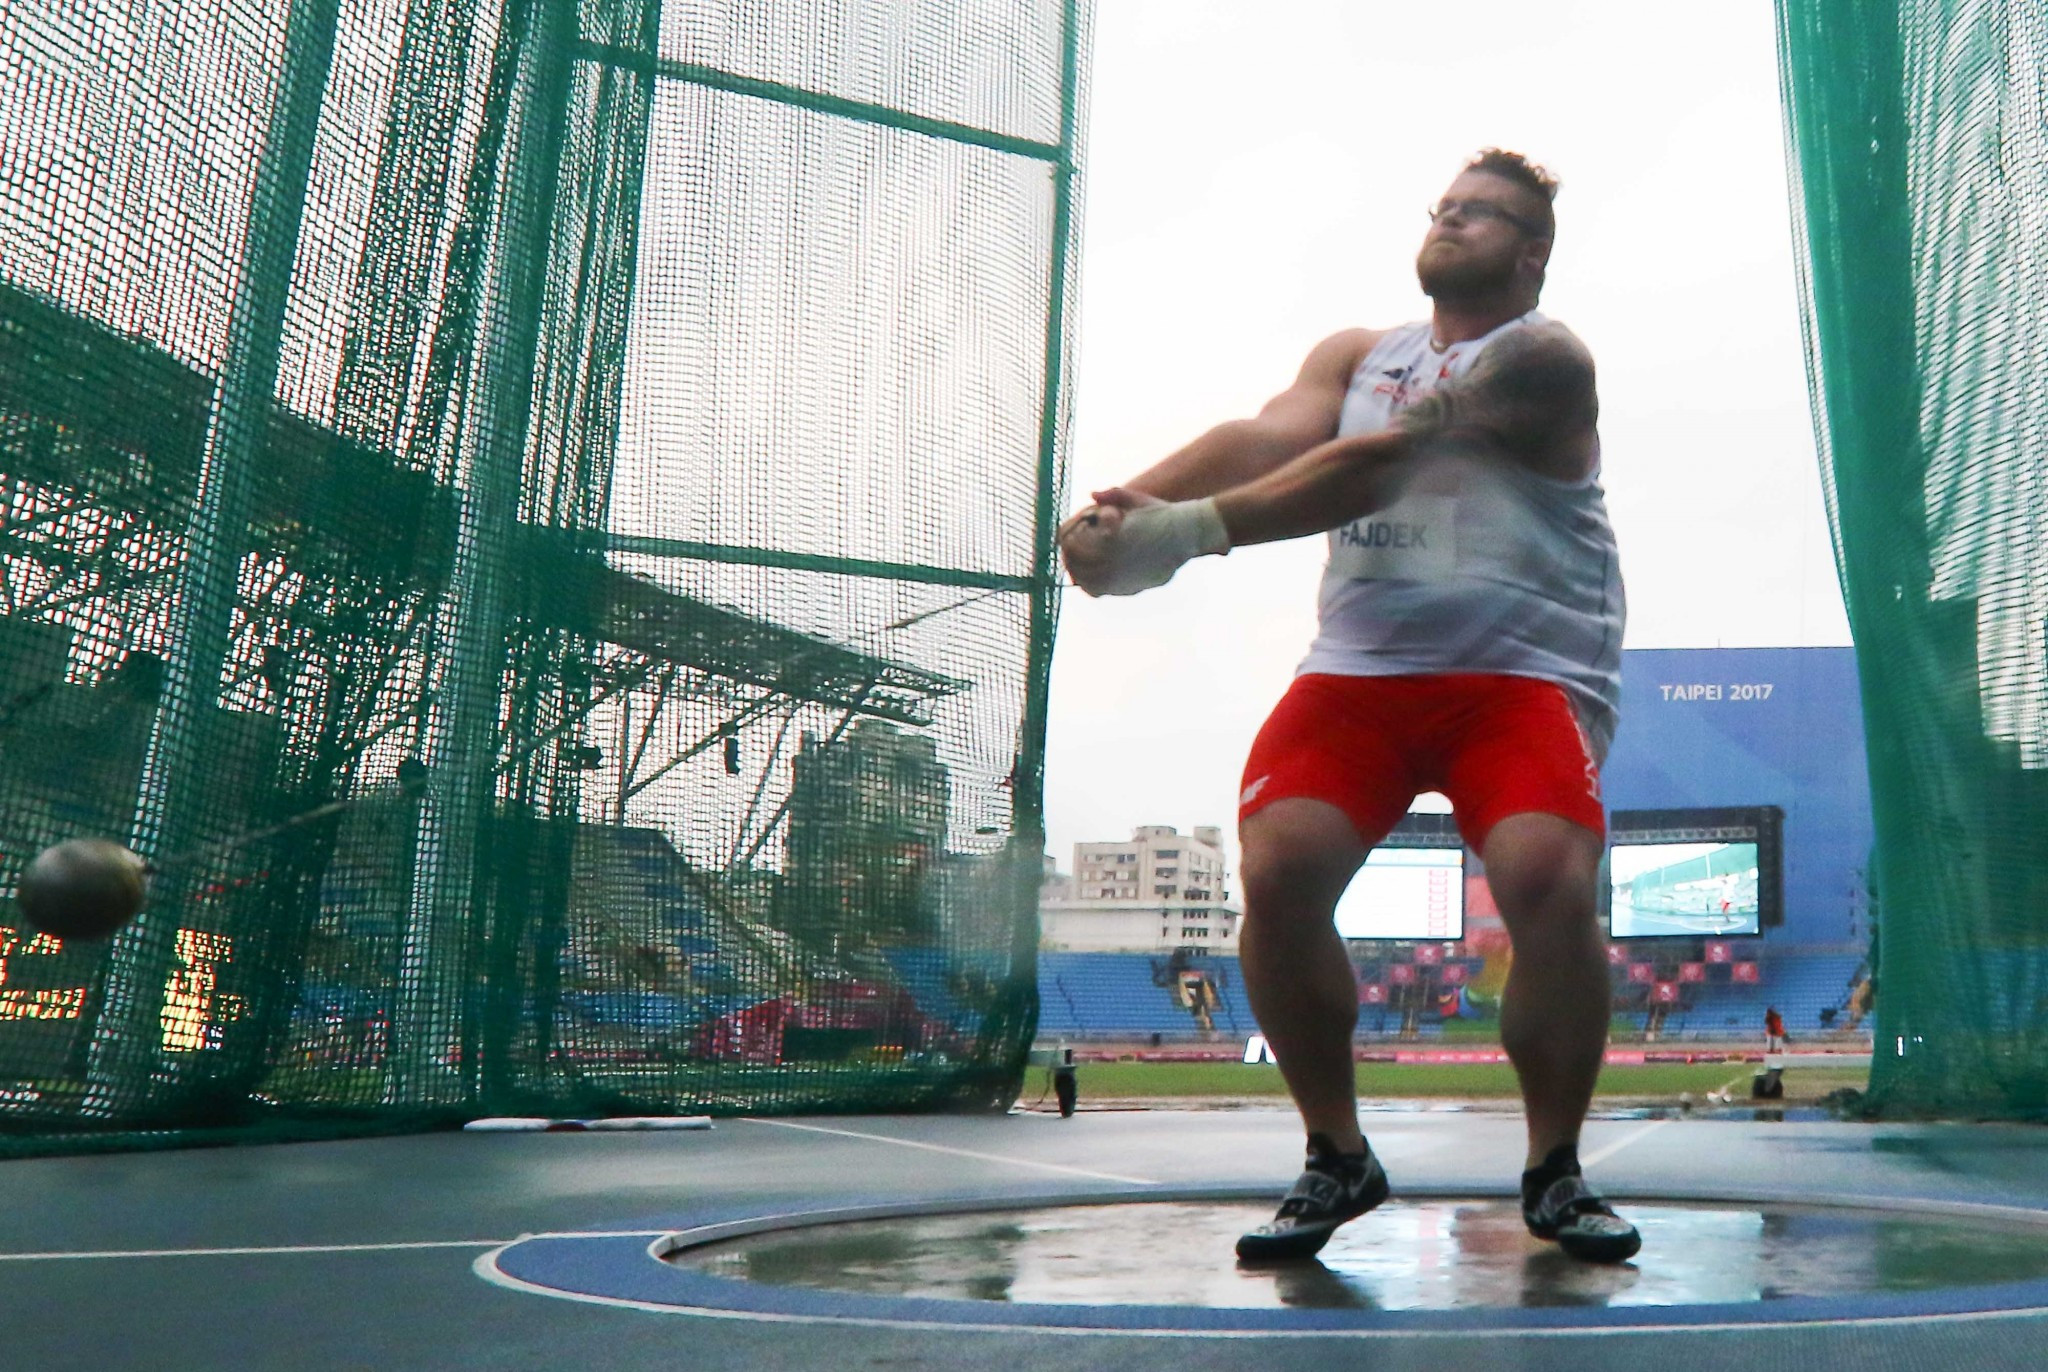 Poland's Pawel Fajdek won the hammer throw gold for a fourth Universiade in a row ©Taipei 2017